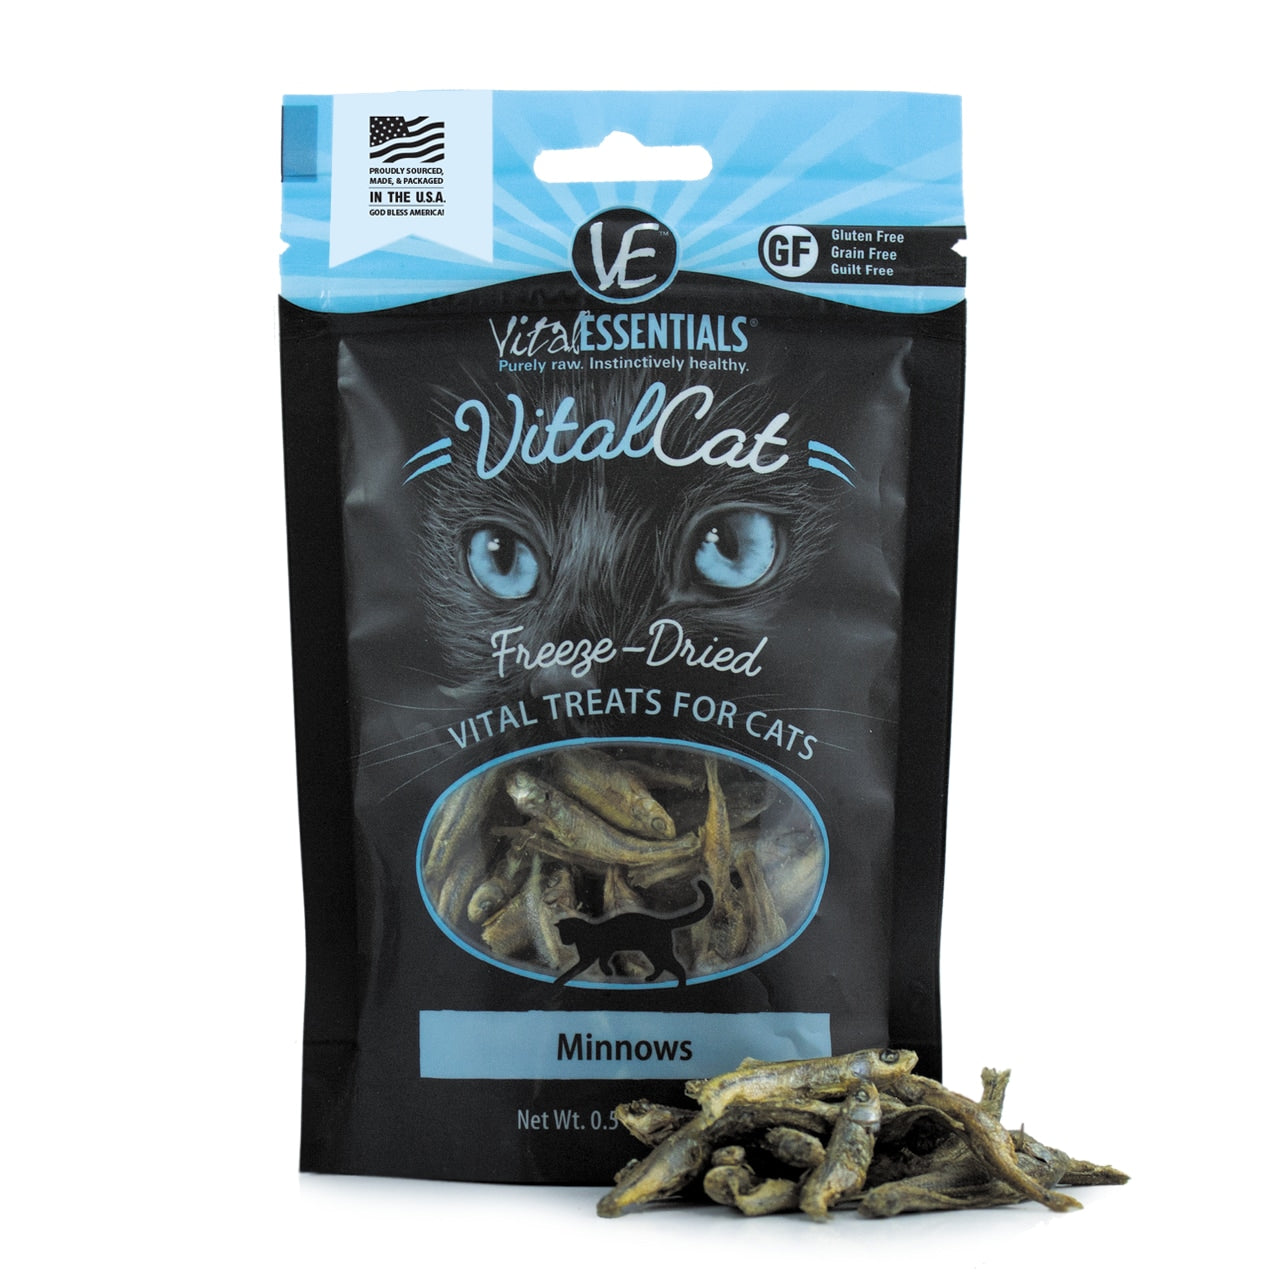 Freeze Dried Minnows for Cats Treats